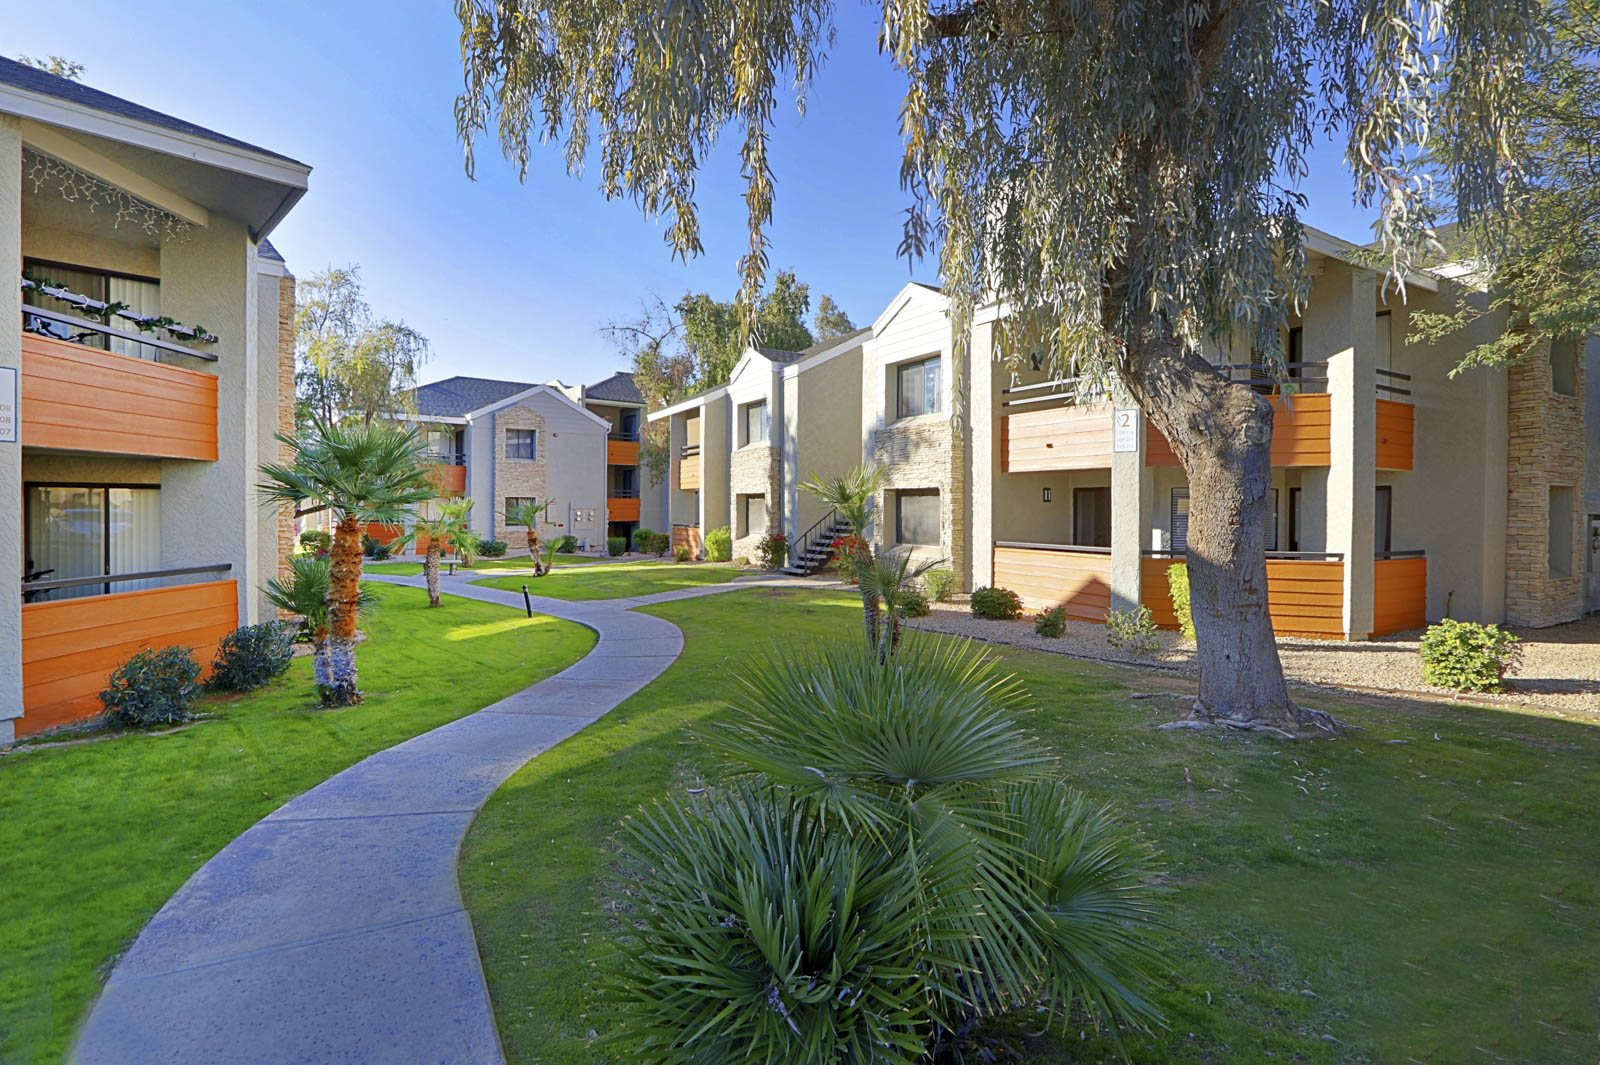 MAXX Properties Expands Footprint With Acquisition of 110-Unit 92Forty Scottsdale Apartments in Popular Phoenix Submarket